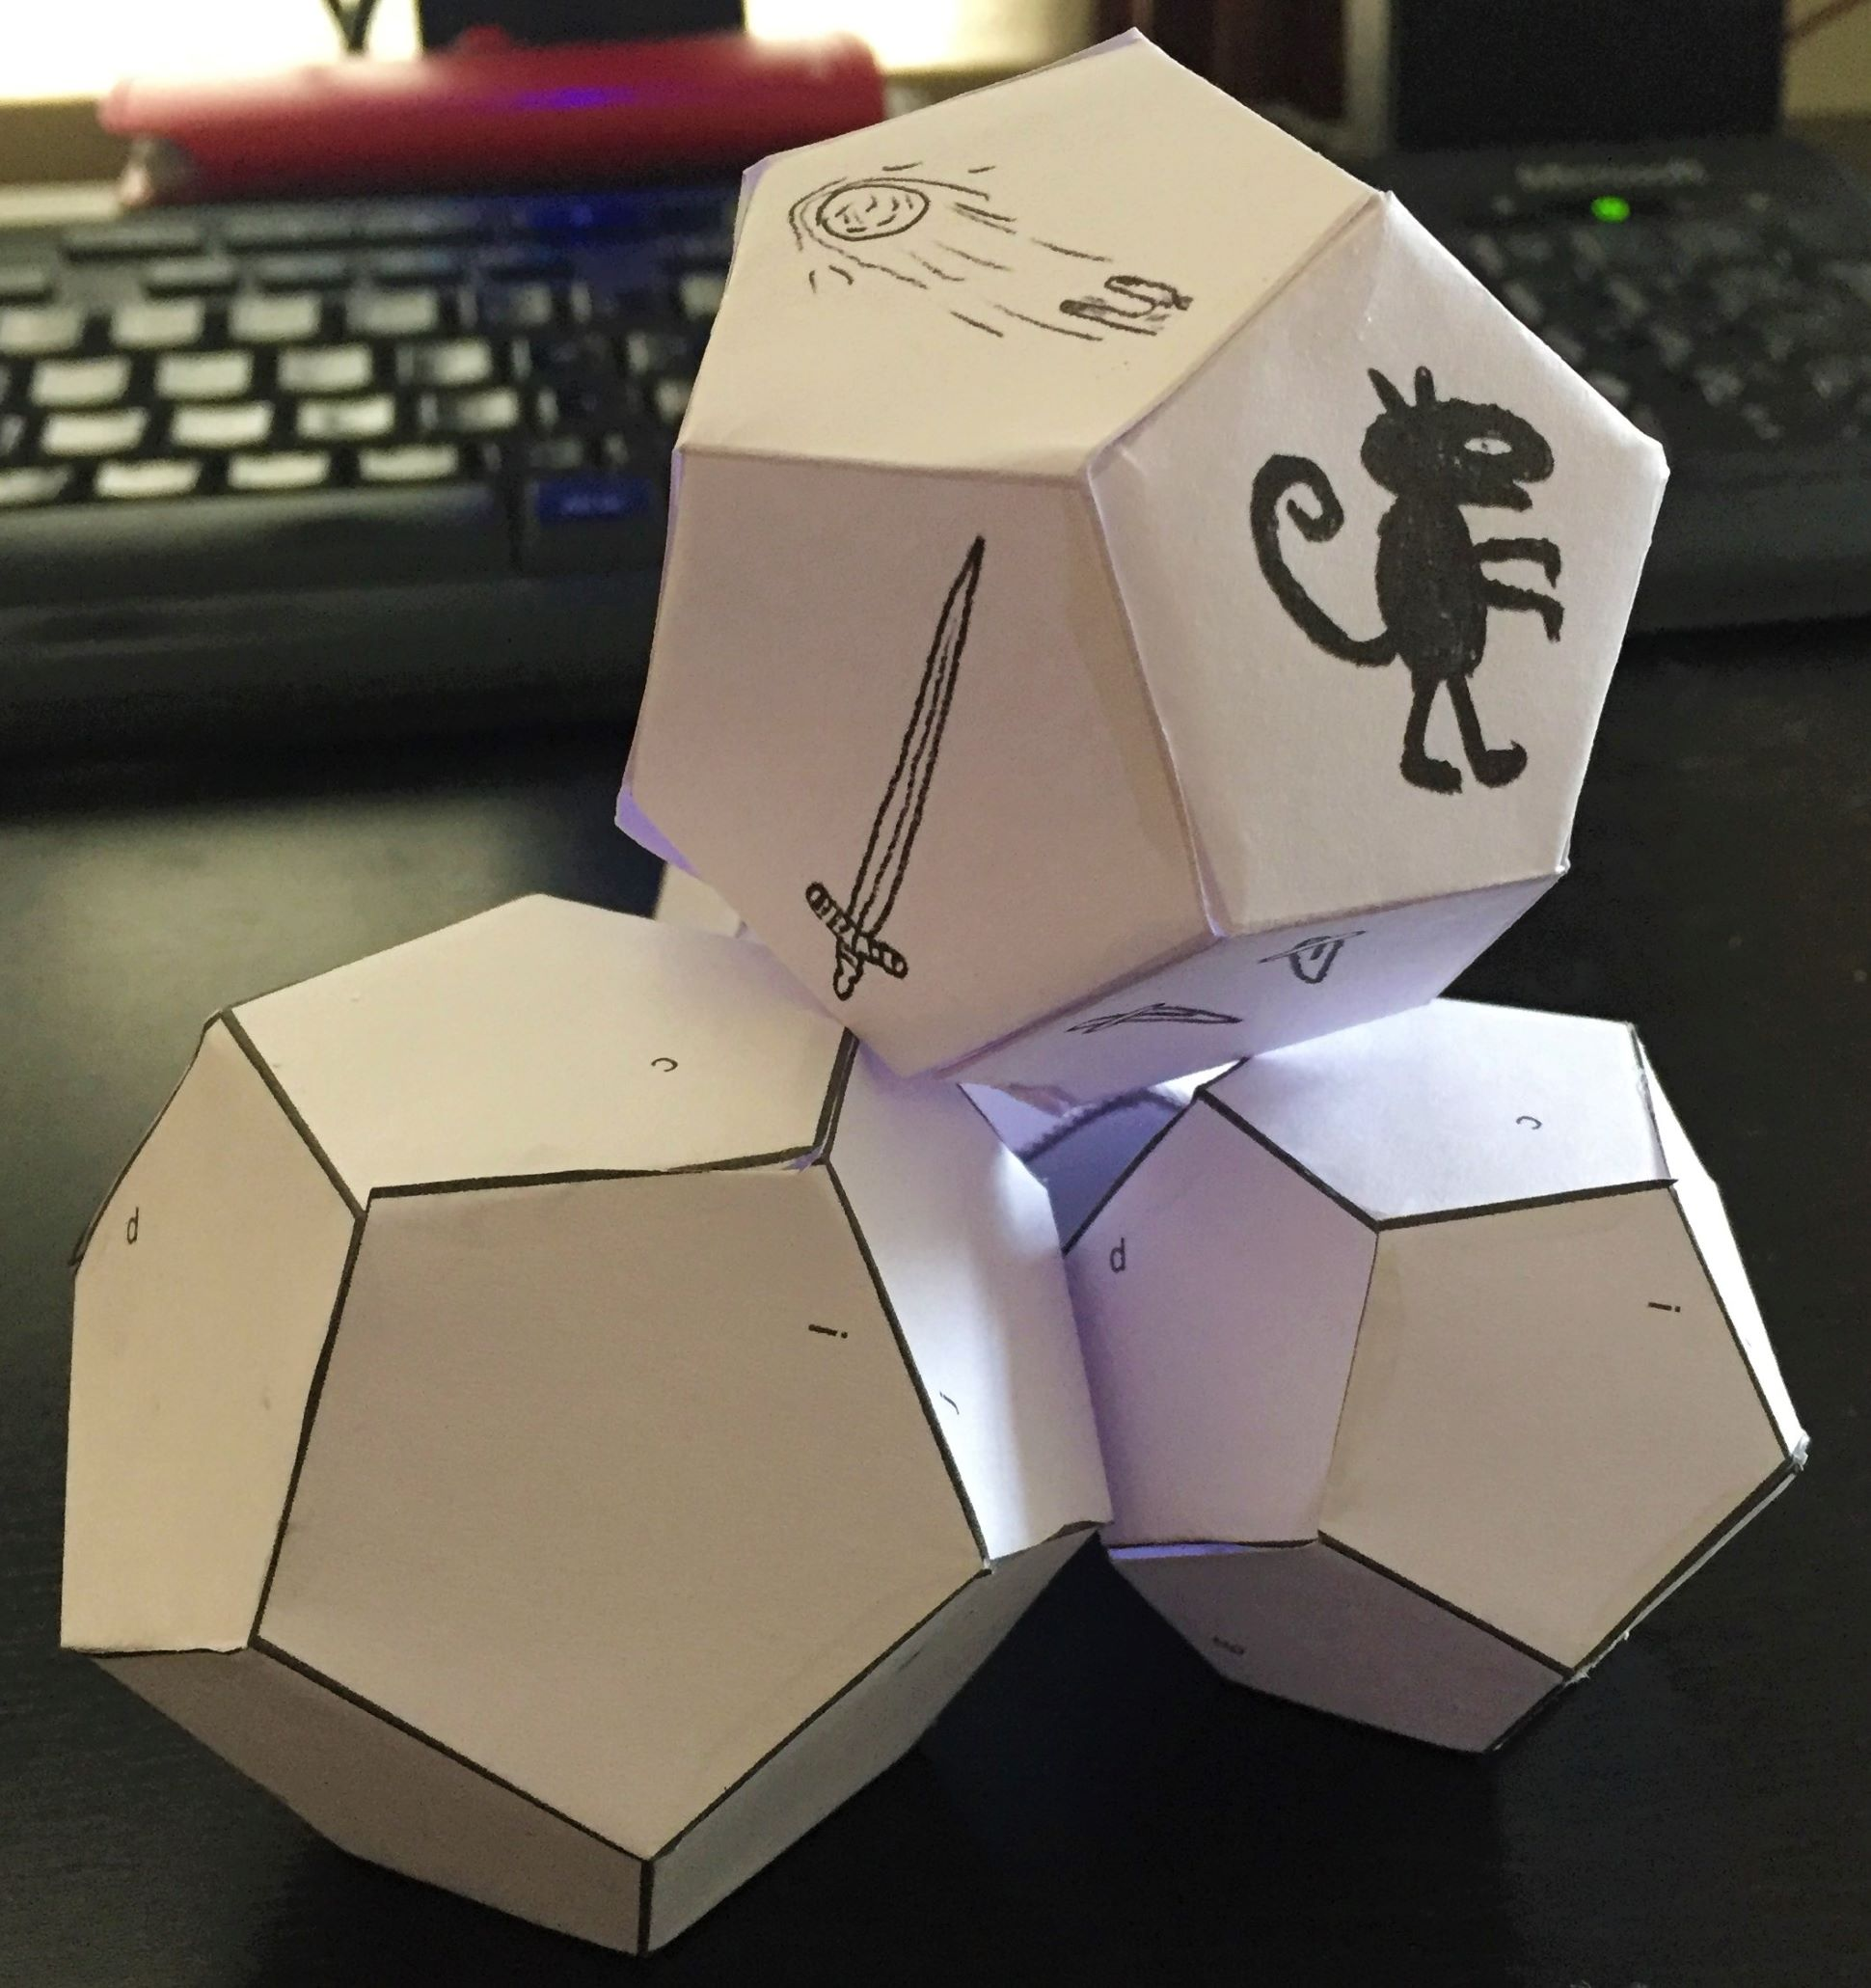 A stack of paper d12s